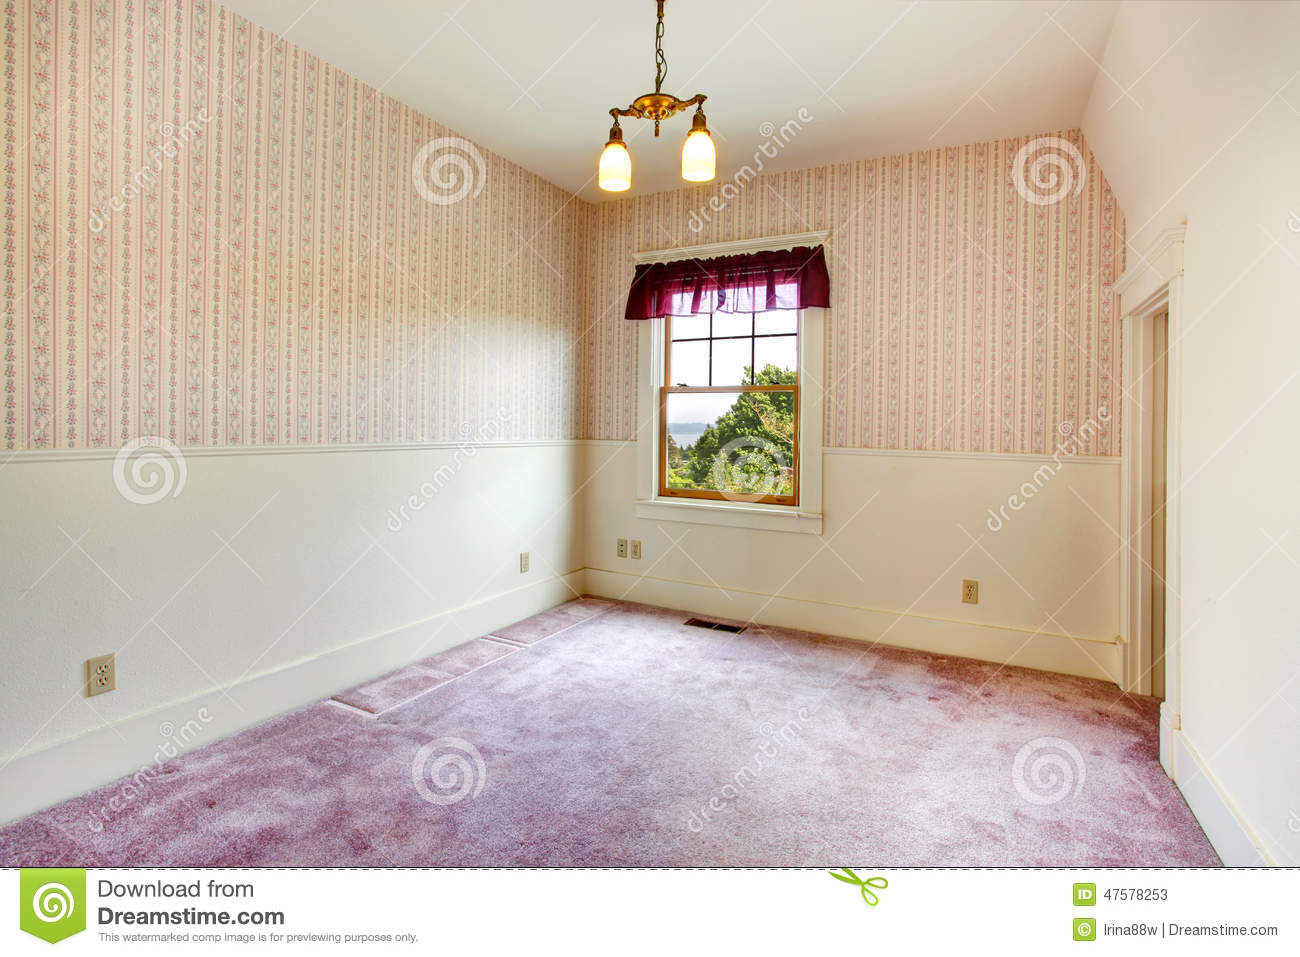 Empty Small Room Old House Creamy Walls Wallpaper Purple Carpet Floor Purple Color Curtains